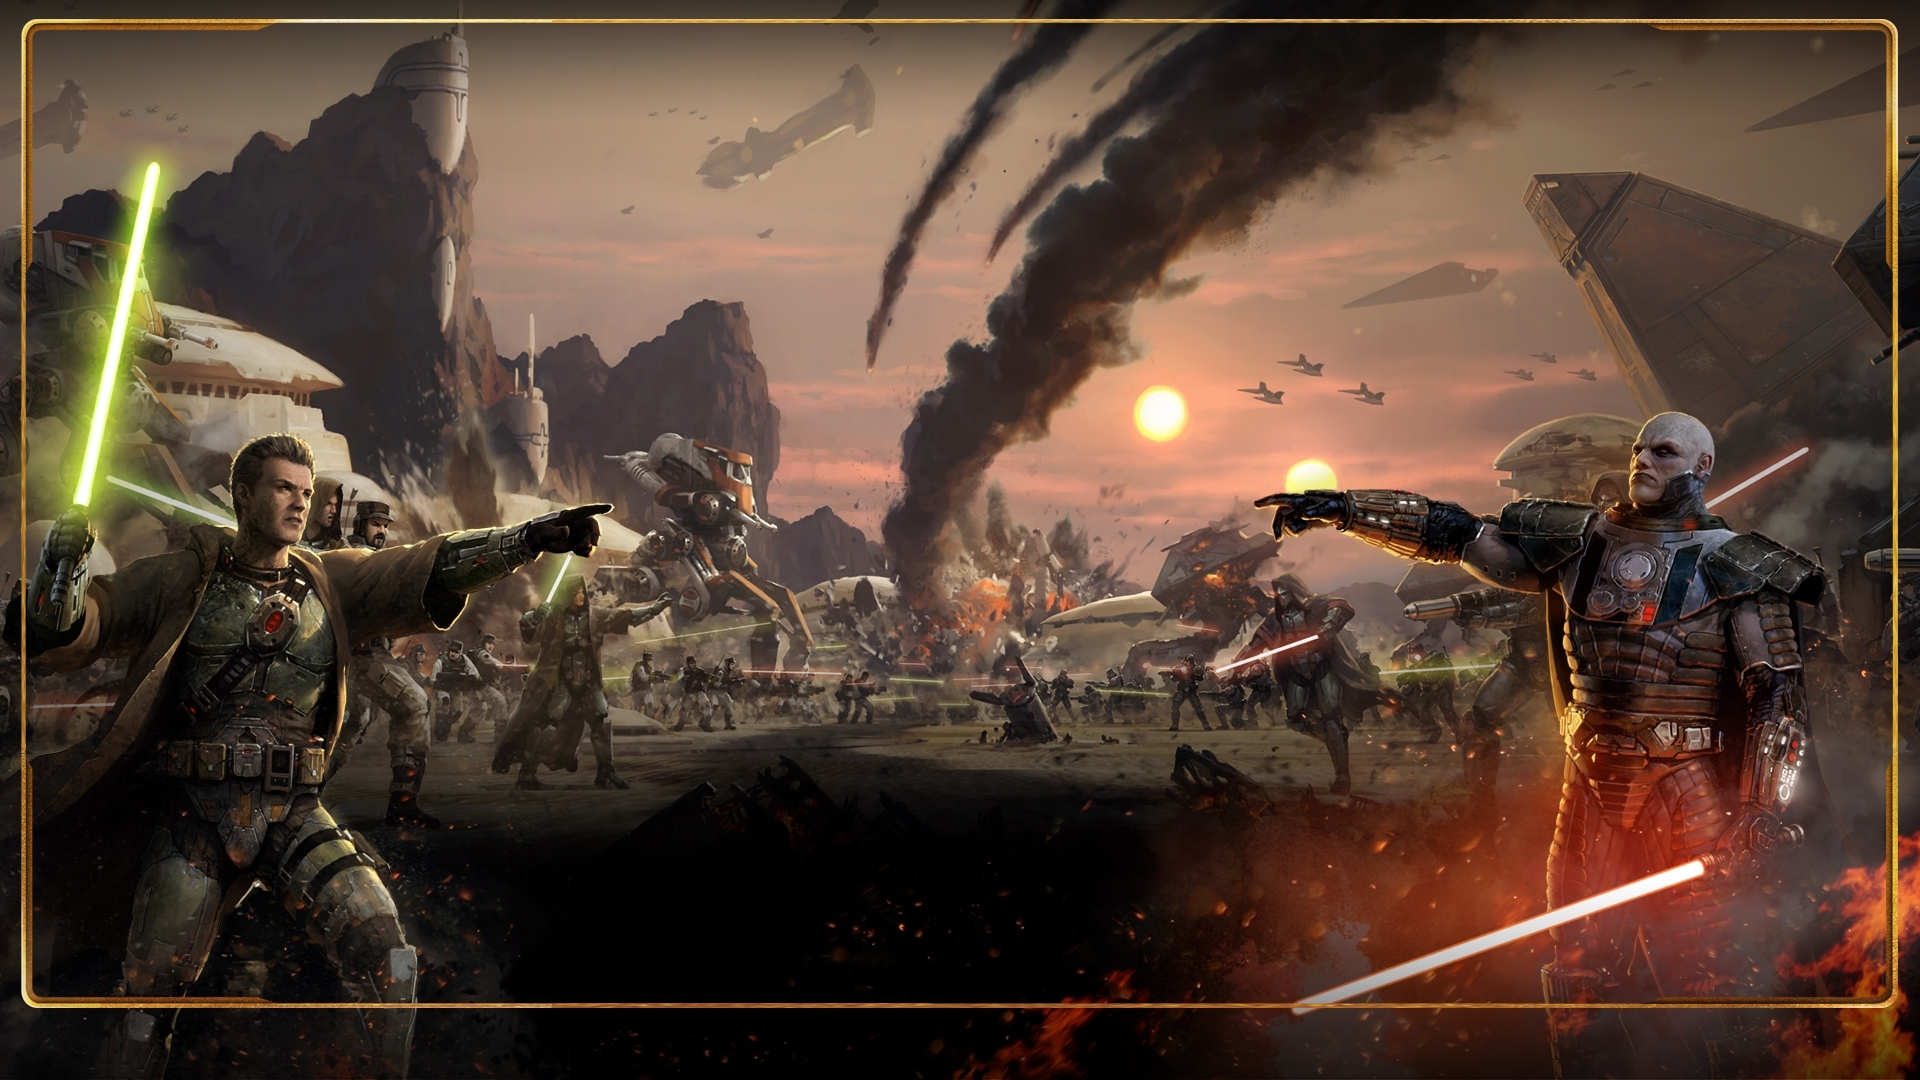 starwars: the old republic images jedi vs sith hd wallpaper and